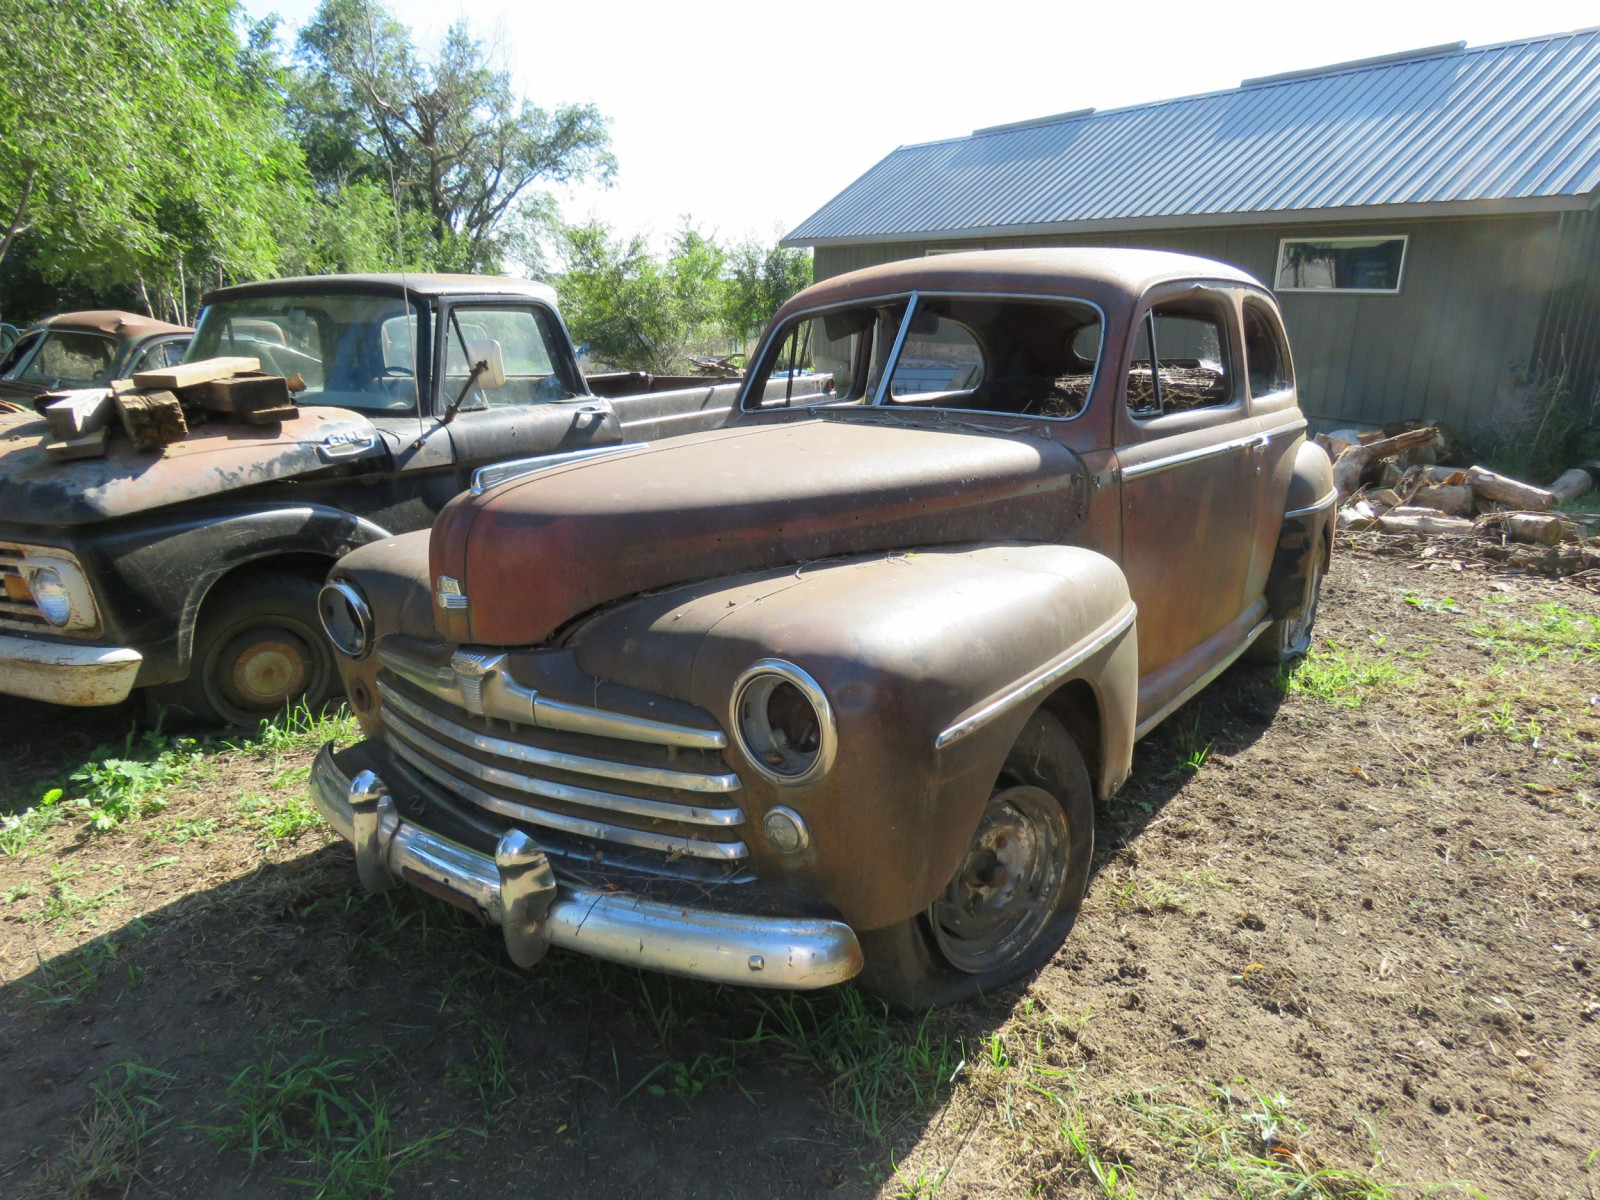 1947 Ford 2dr Sedan for Project or Parts - Image 2